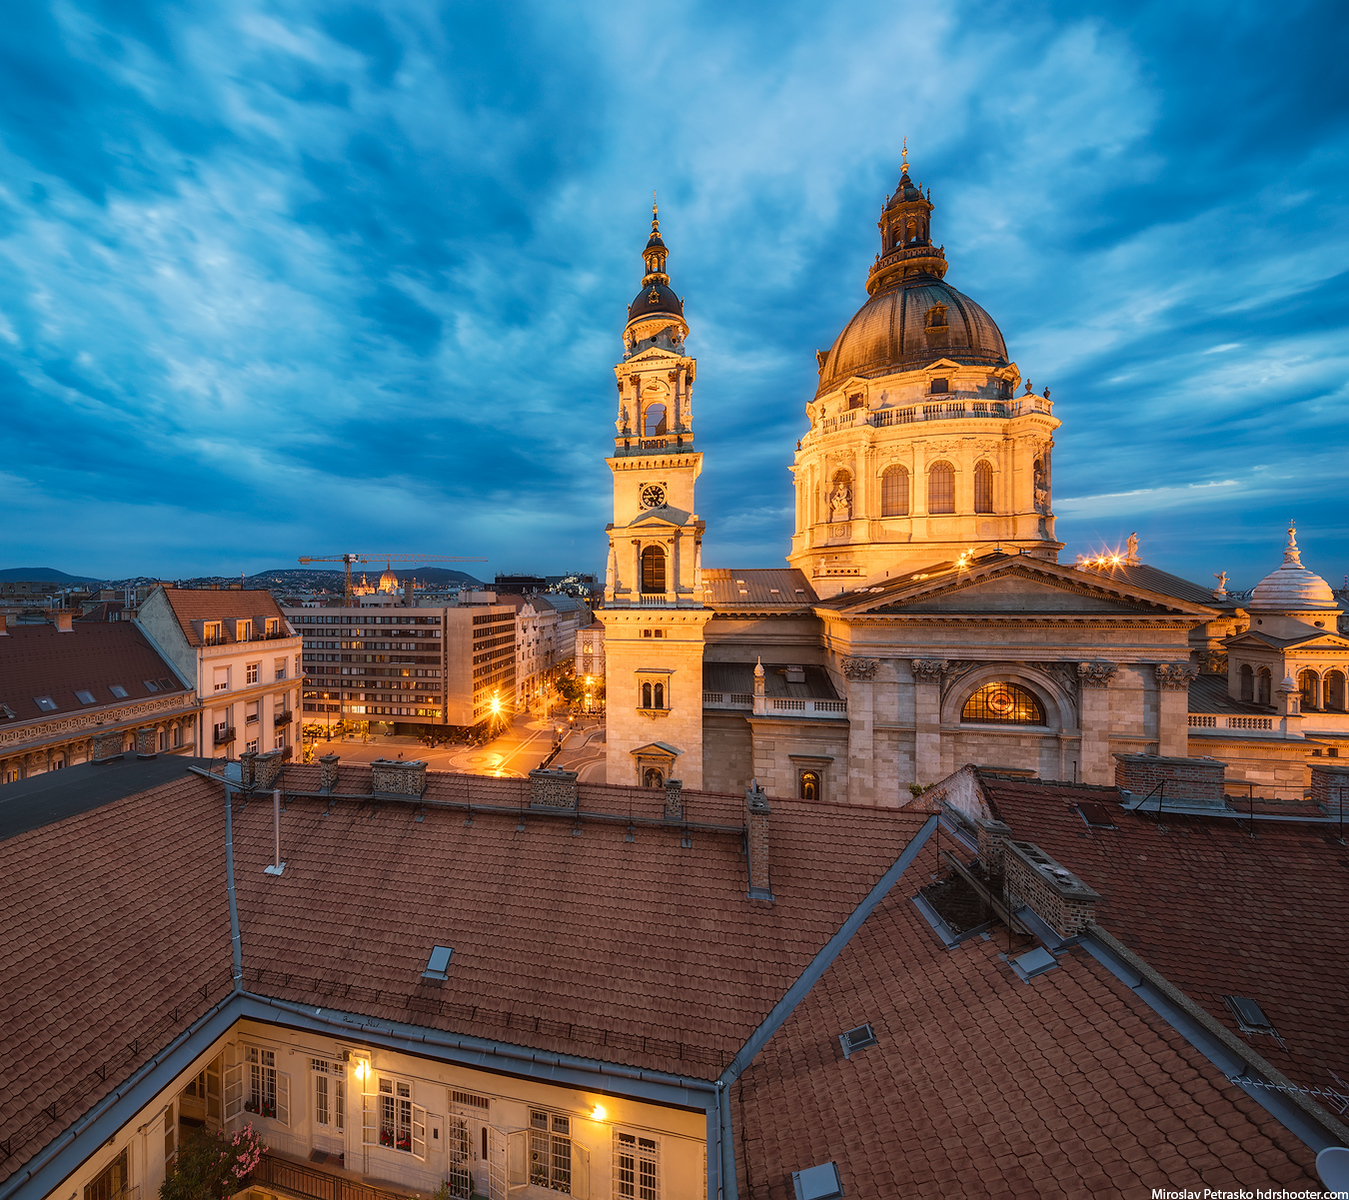 St. Stephen's Basilica from the side, Budapest, Hungary